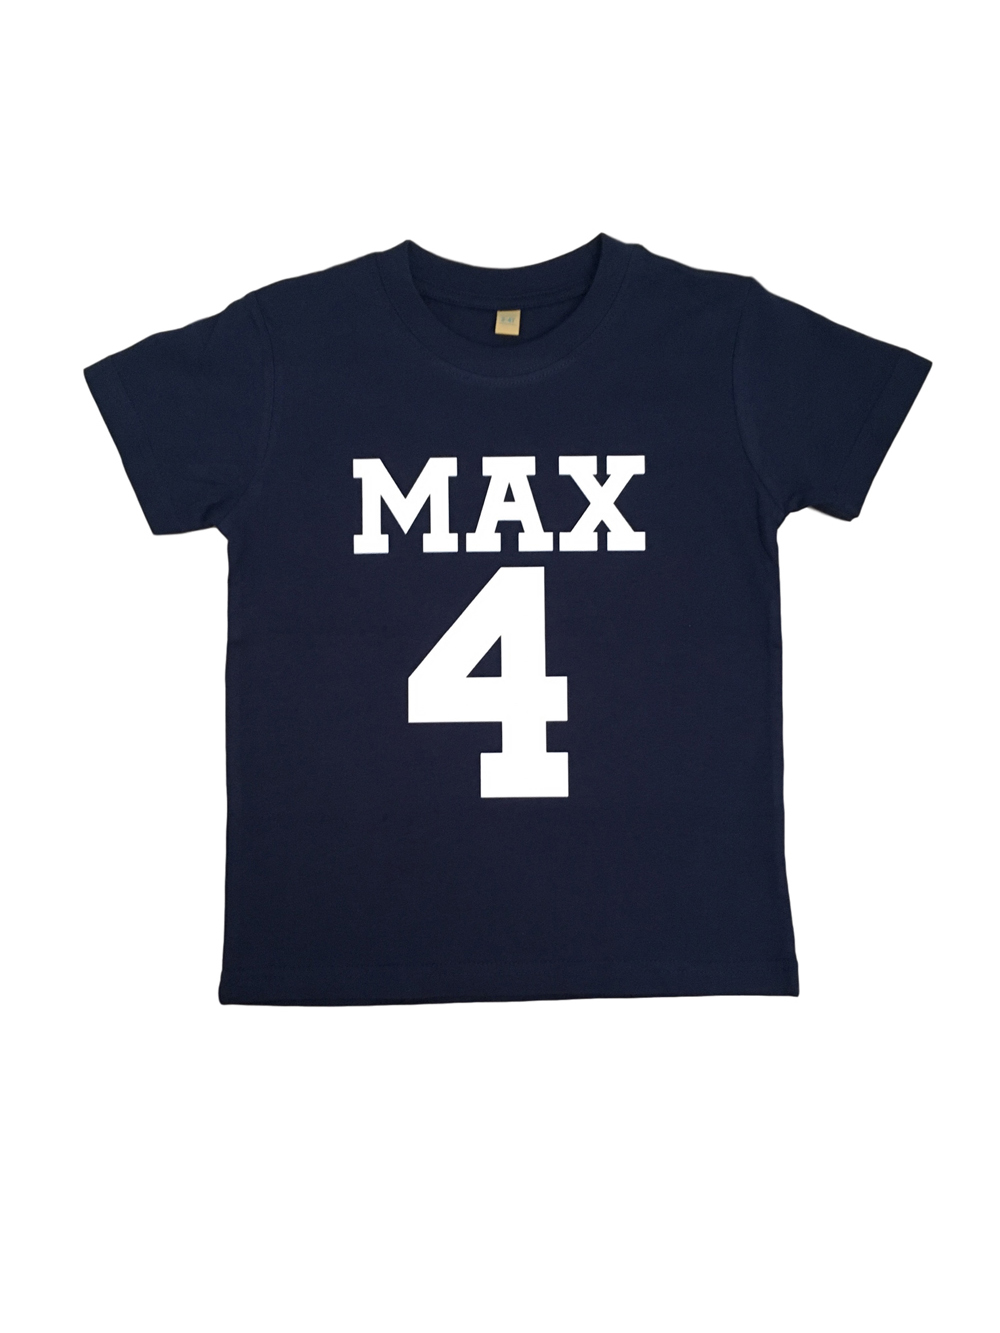 Name And Number Personalised Tshirt – Navy